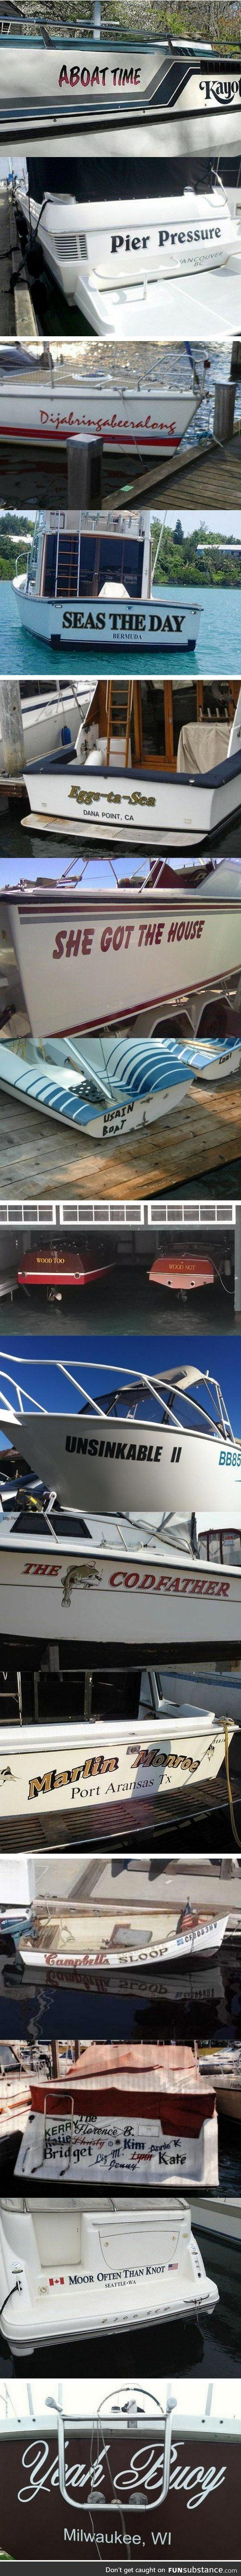 Boats with fairly clever names...